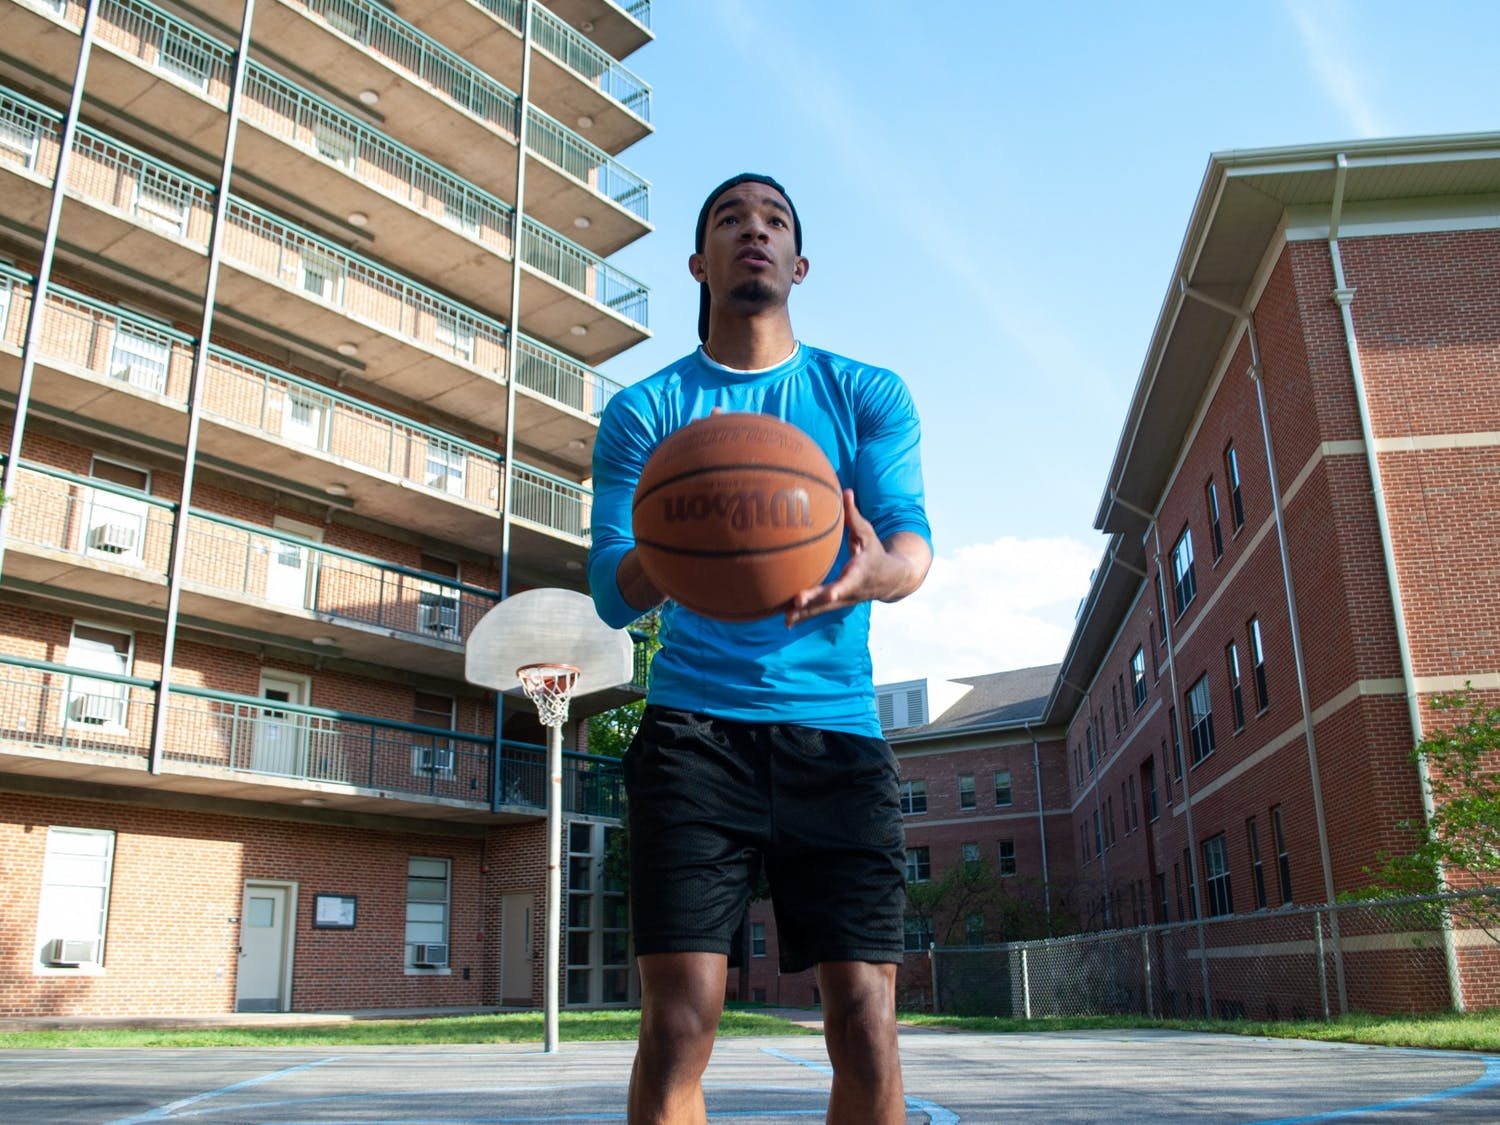 """Students have a lot to say about the hiring of Hubert Davis as the new head coach of the men's basketball team. First year biology major Tre Thorne comments, """"I think it's great to have an authority figure of color. Would've been cool if it was Michael Jordan though."""""""